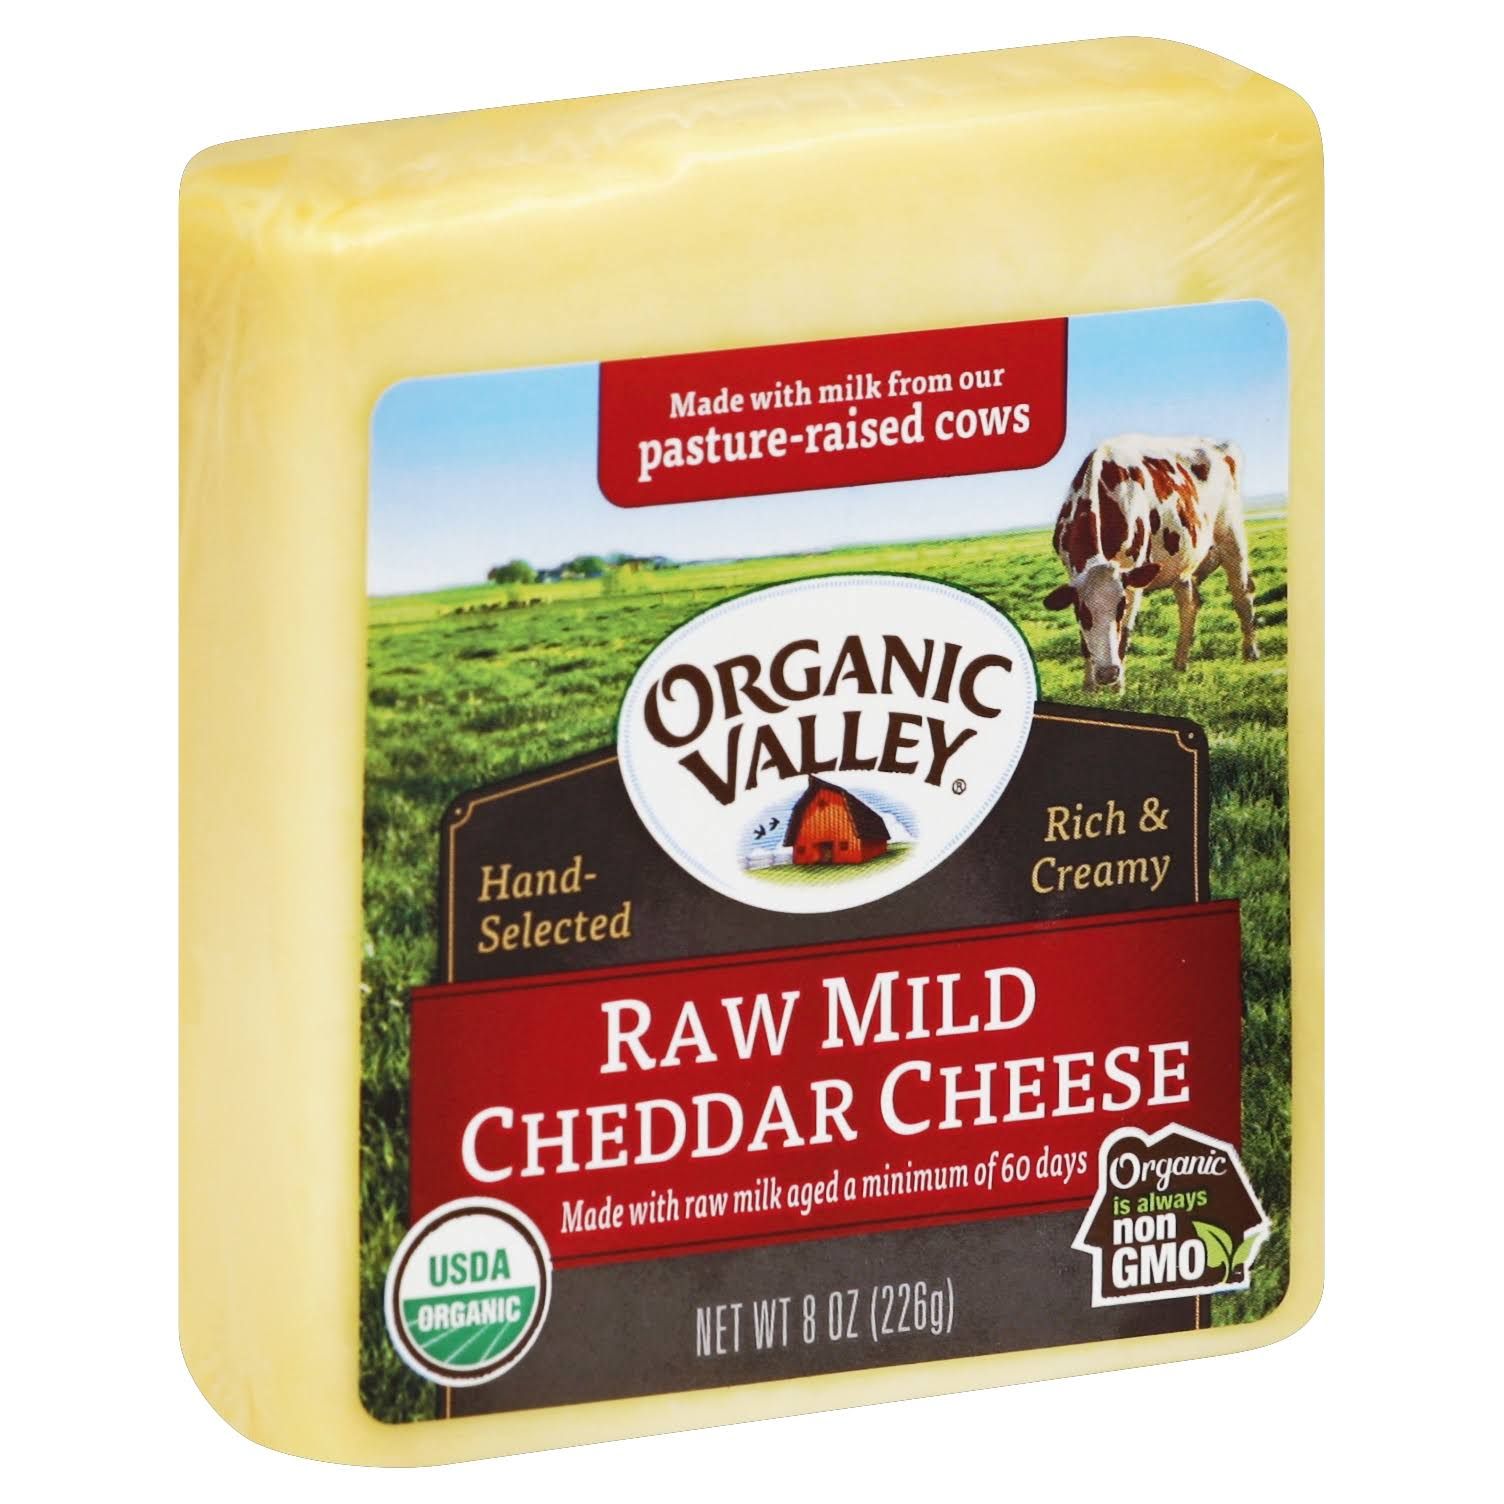 Organic Valley Organic Raw Mild Cheddar Cheese - 8oz